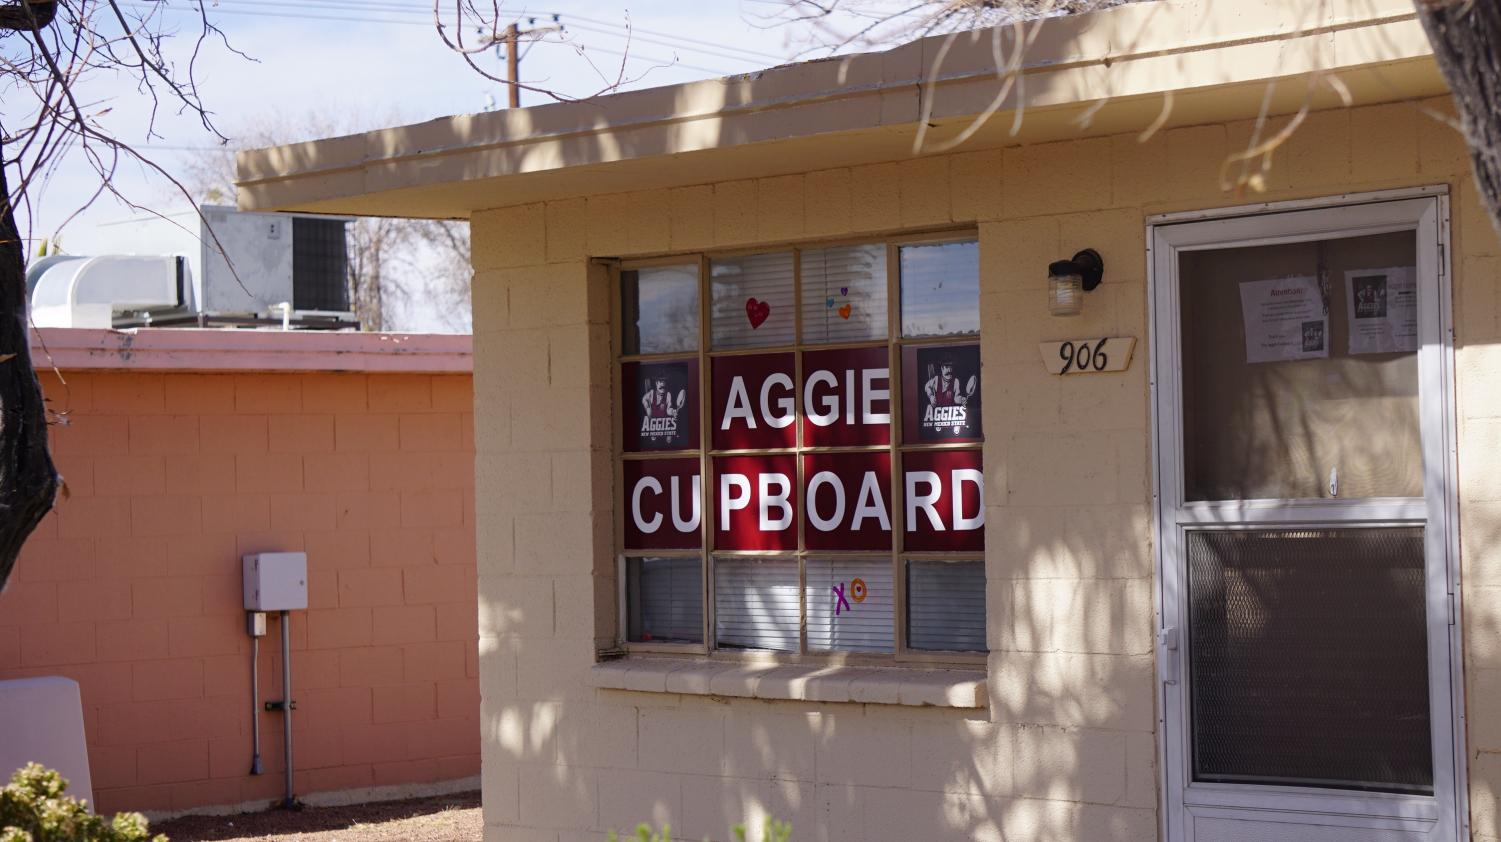 The Aggie Cupboard Building.